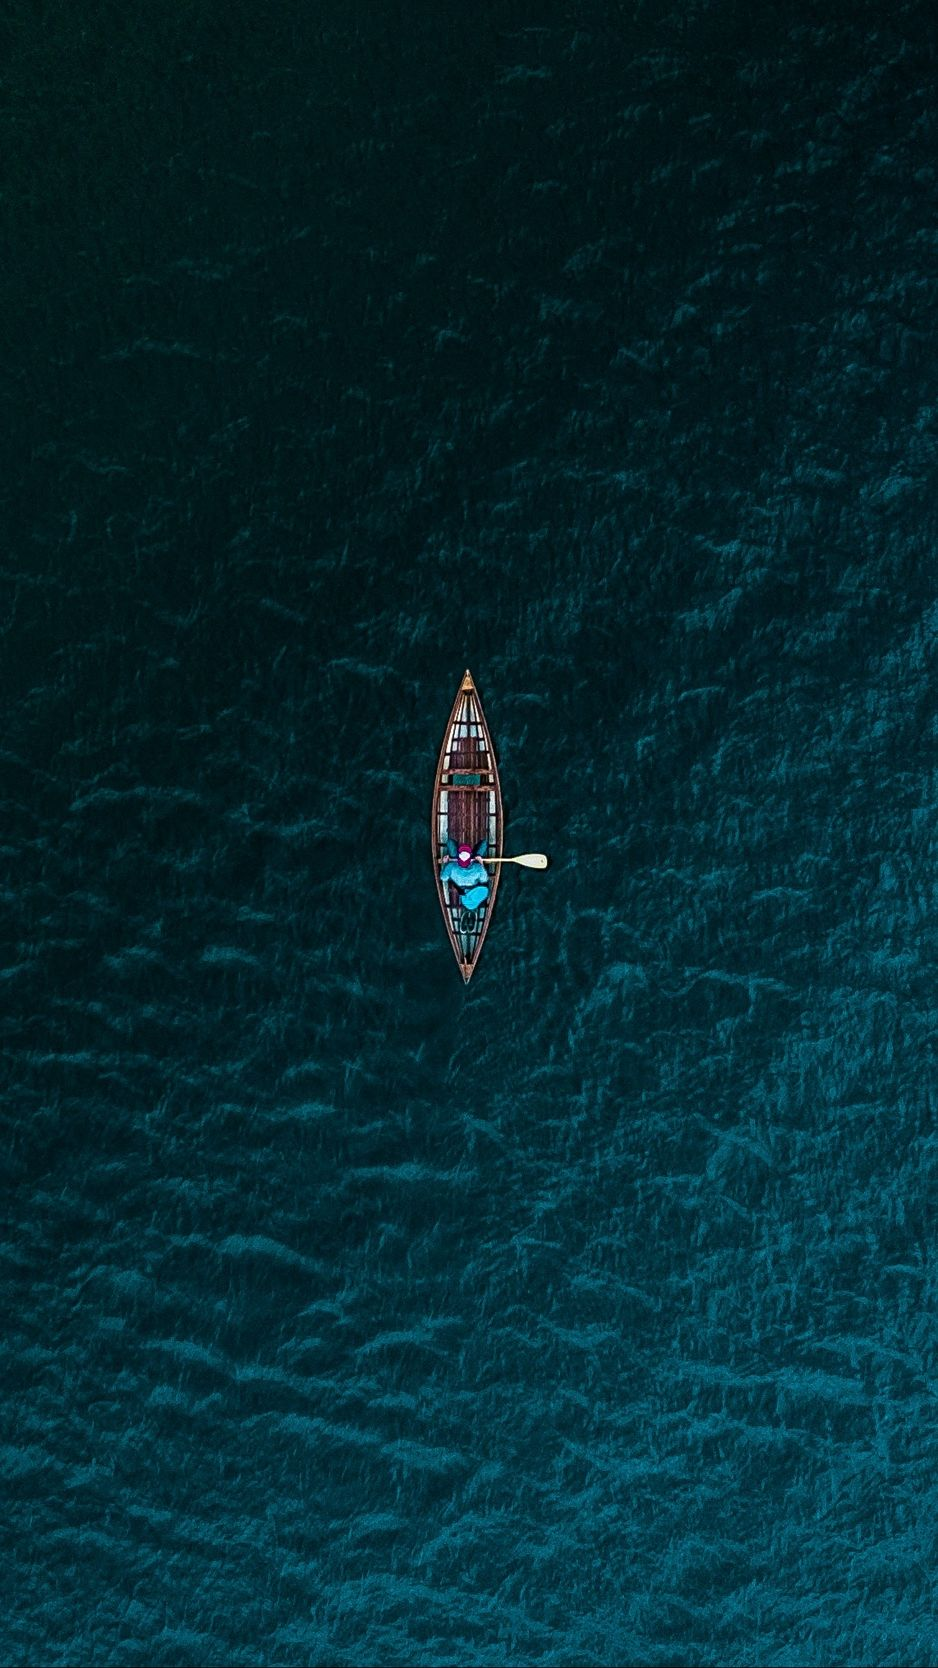 Boat Sea View From Above Water Wallpaper Background Iphone Wallpaper Blur Minimal Wallpaper Screen Savers Wallpapers Wallpaper drone photo trees boat sea